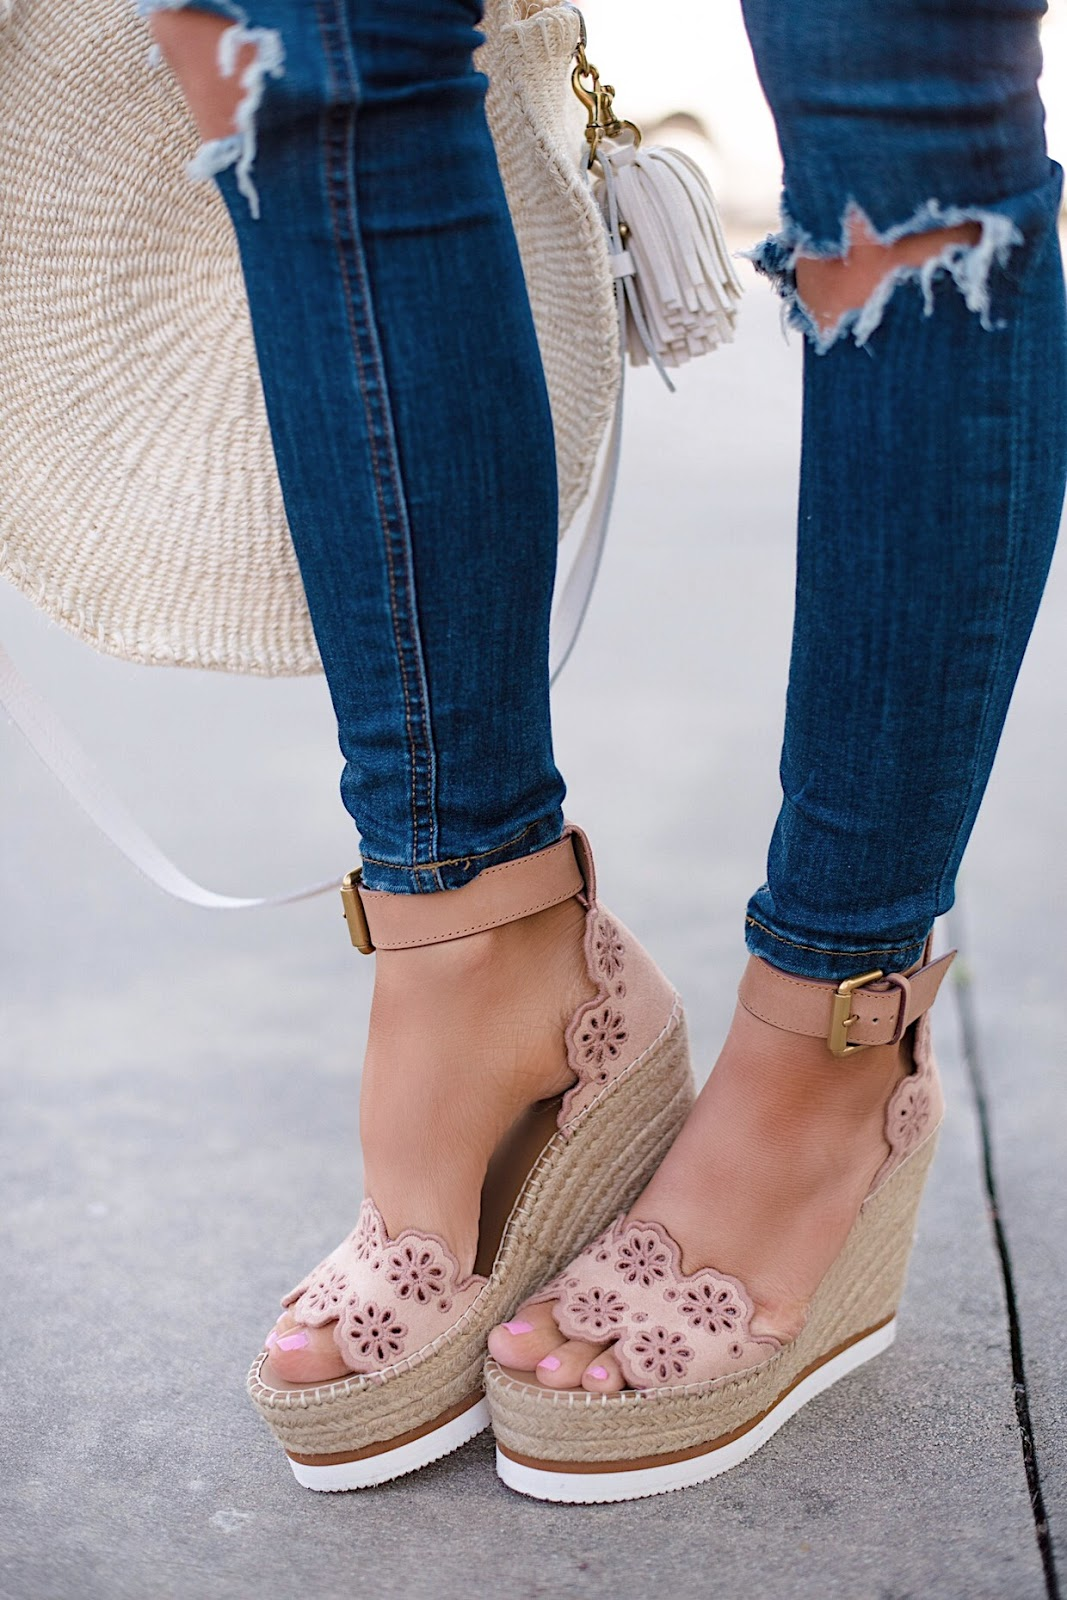 See by Chloe Eyelet Wedges - See more and find all the details on Something Delightful Blog